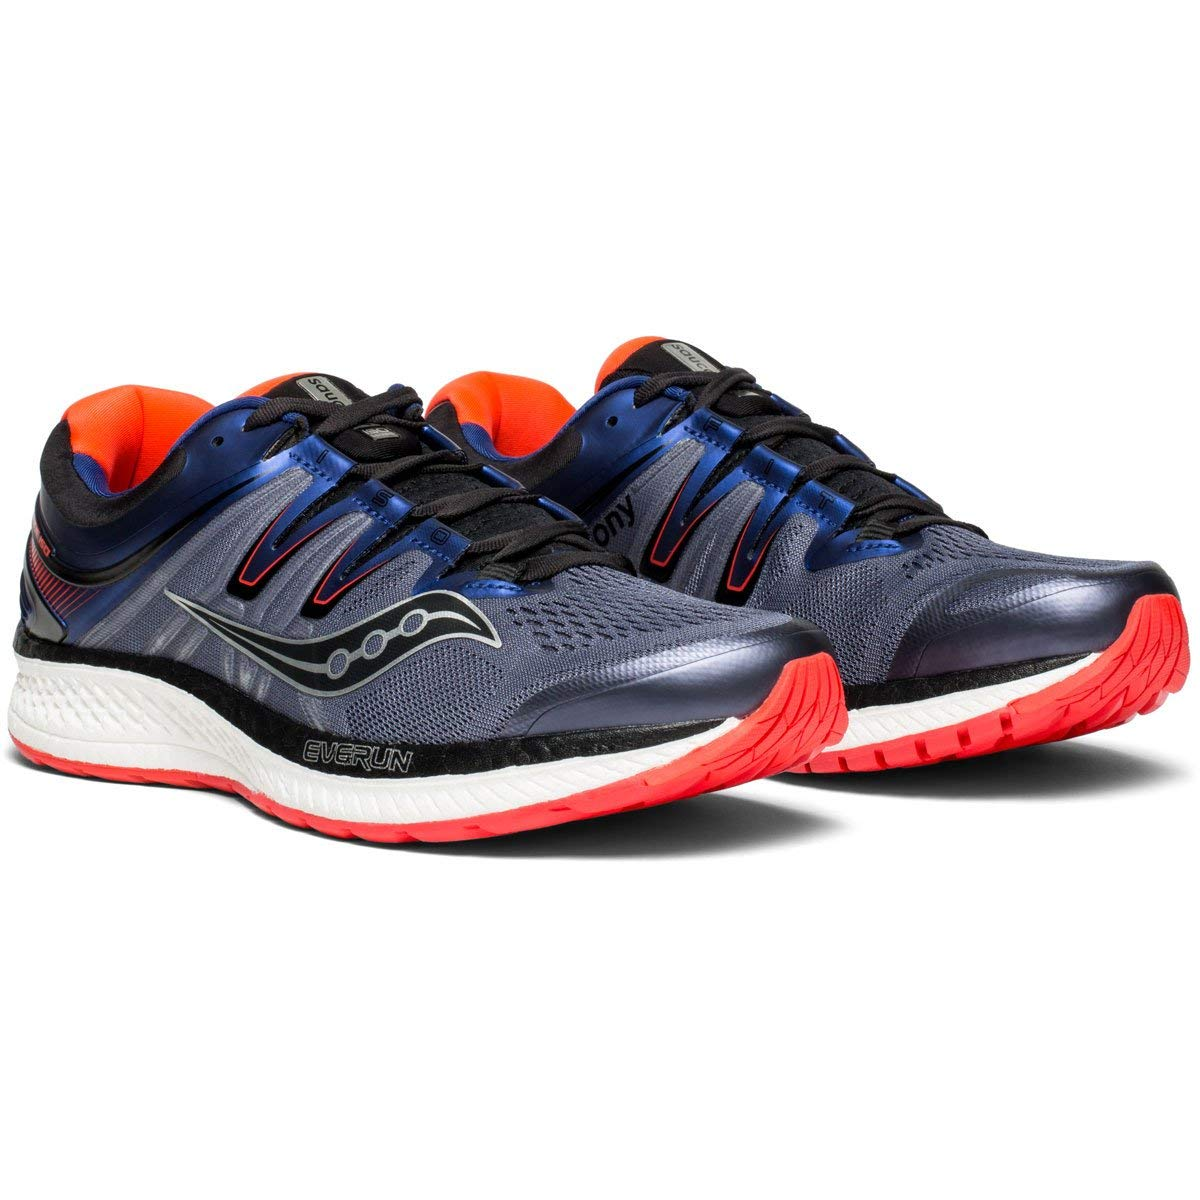 f965bac2e15c Details about Saucony Mens Hurricane ISO 4 Running Shoes Trainers Sneakers  Grey Red